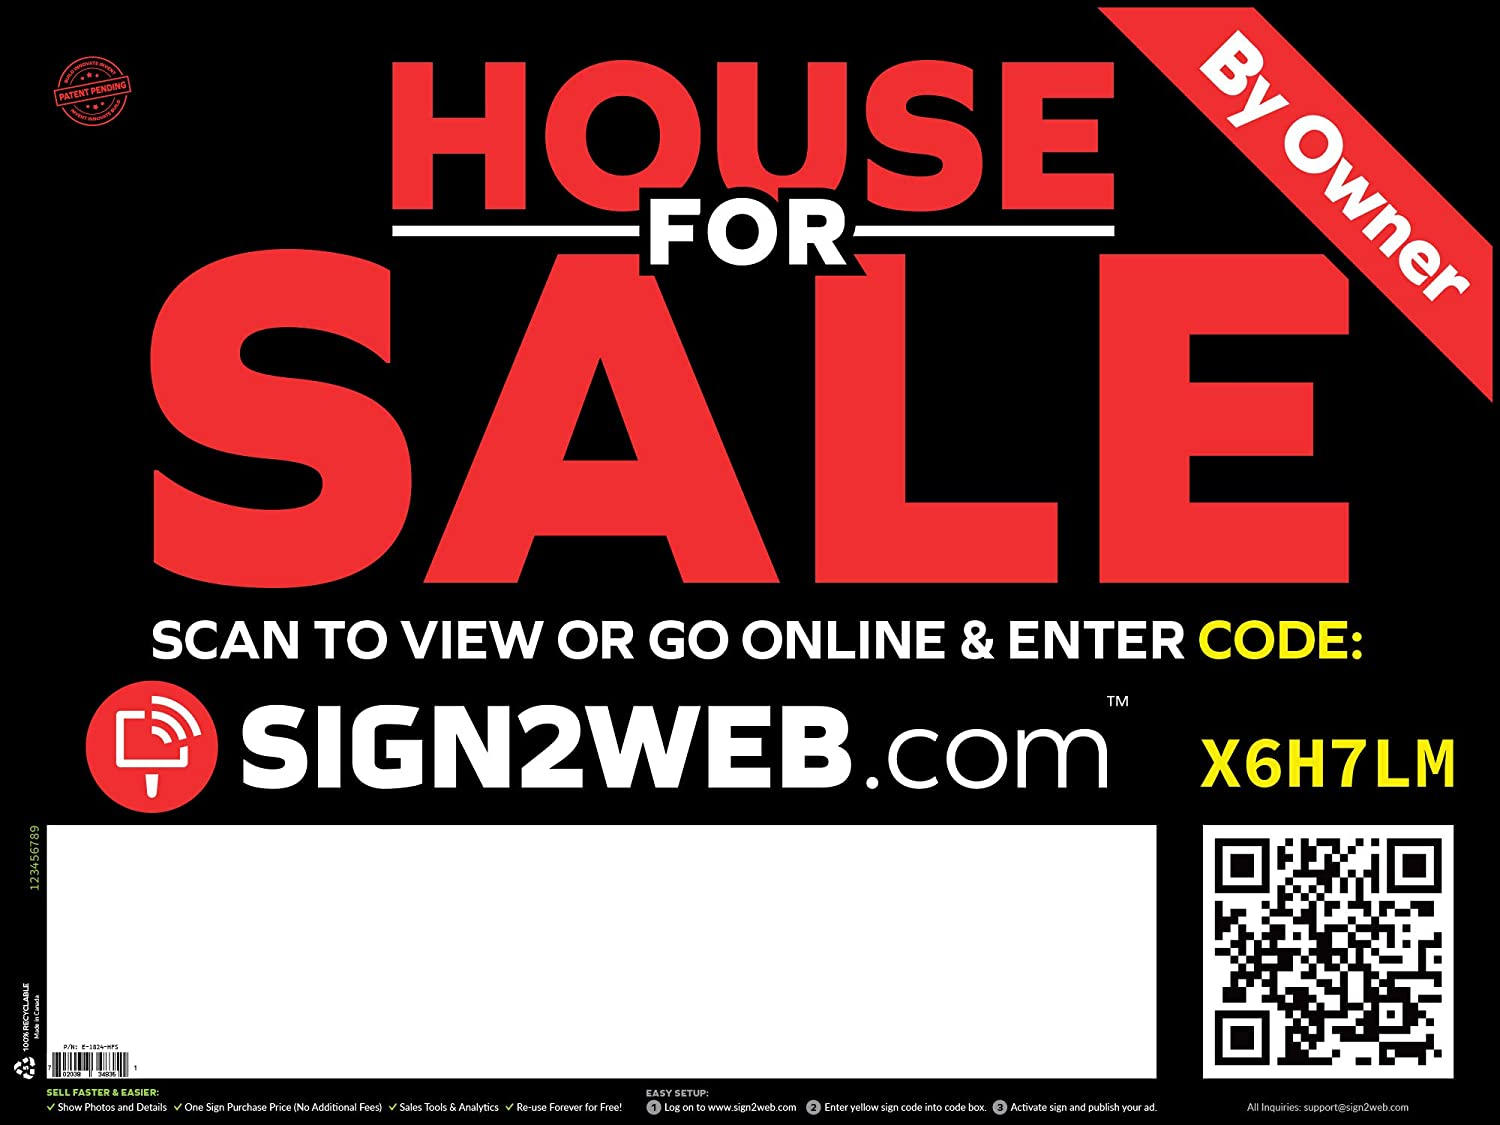 "Web Enabled Home for Sale Sign + Website - Large 24"" x 18"" Laser Printed High Visibility House for Sale by Owner Sign - Double Sided House for Sale Yard Sign - The Evolved Real Estate for Sale Sign!"